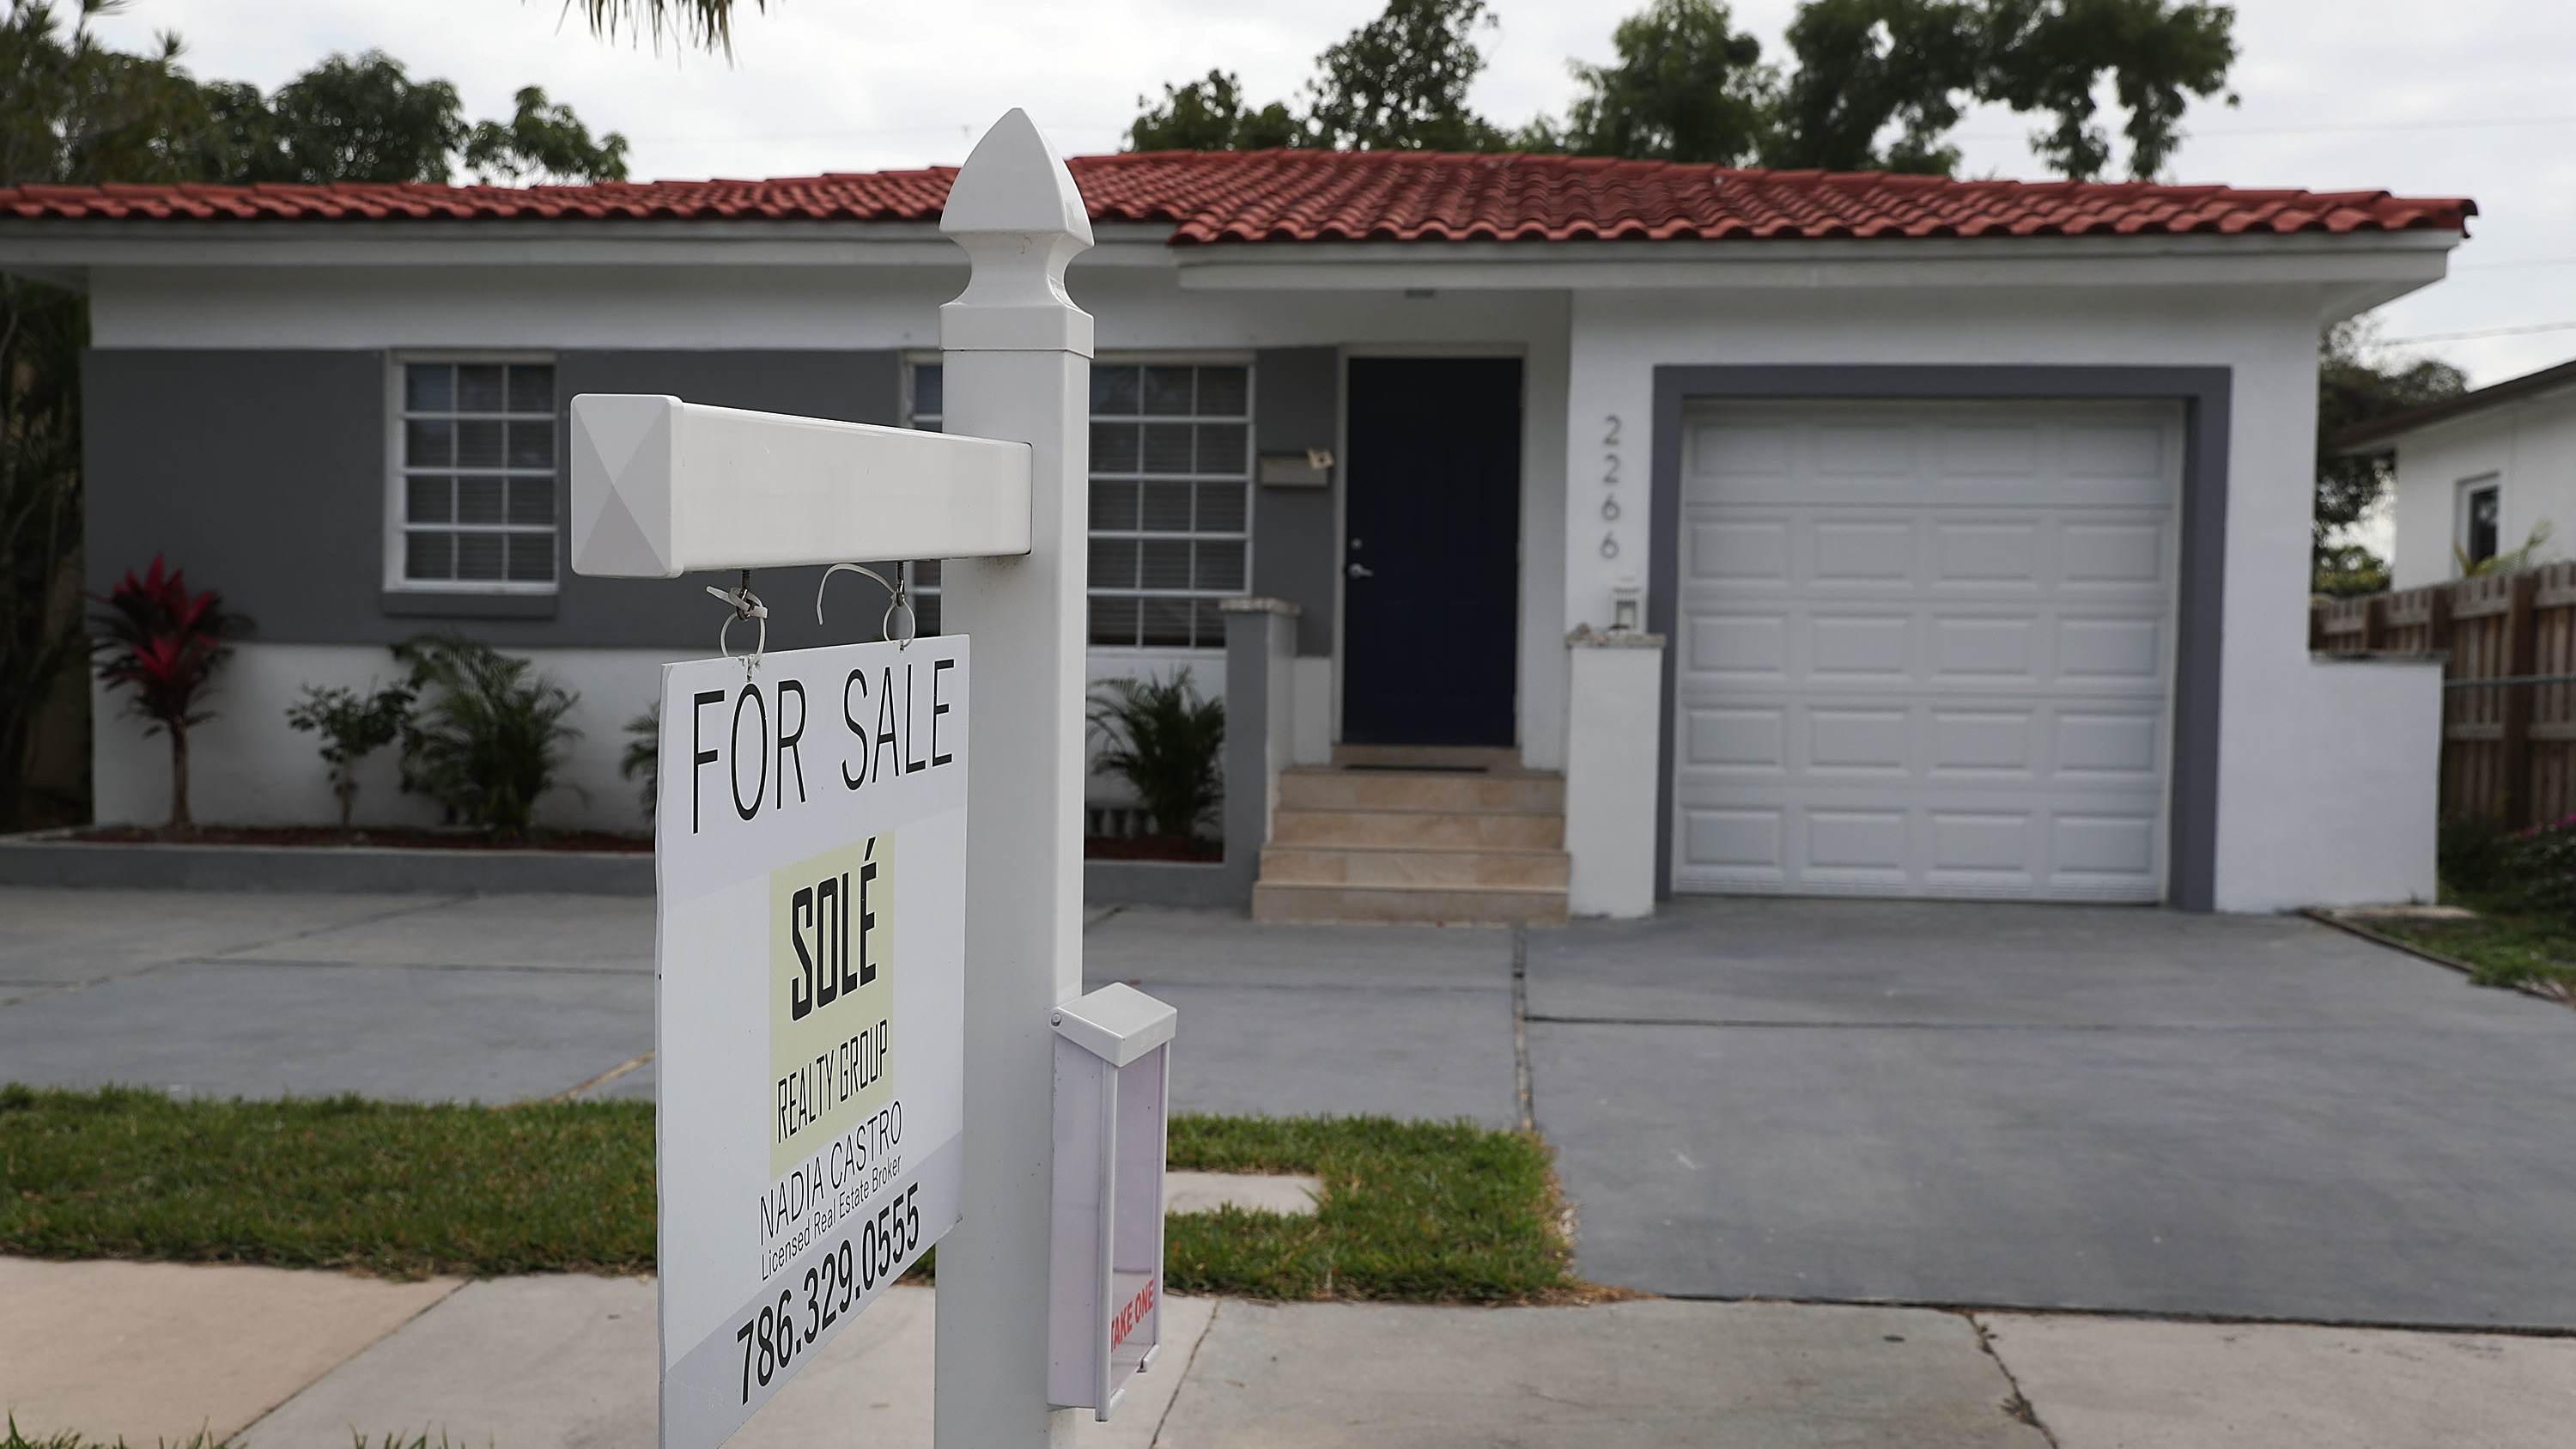 """A """"for sale"""" sign is seen in front of a home in Miami on Jan. 24, 2018. The partial shutdown of the federal government is causing some financial problems for furloughed workers who can't refinance their mortgages or buy homes because lenders can't verify their income."""